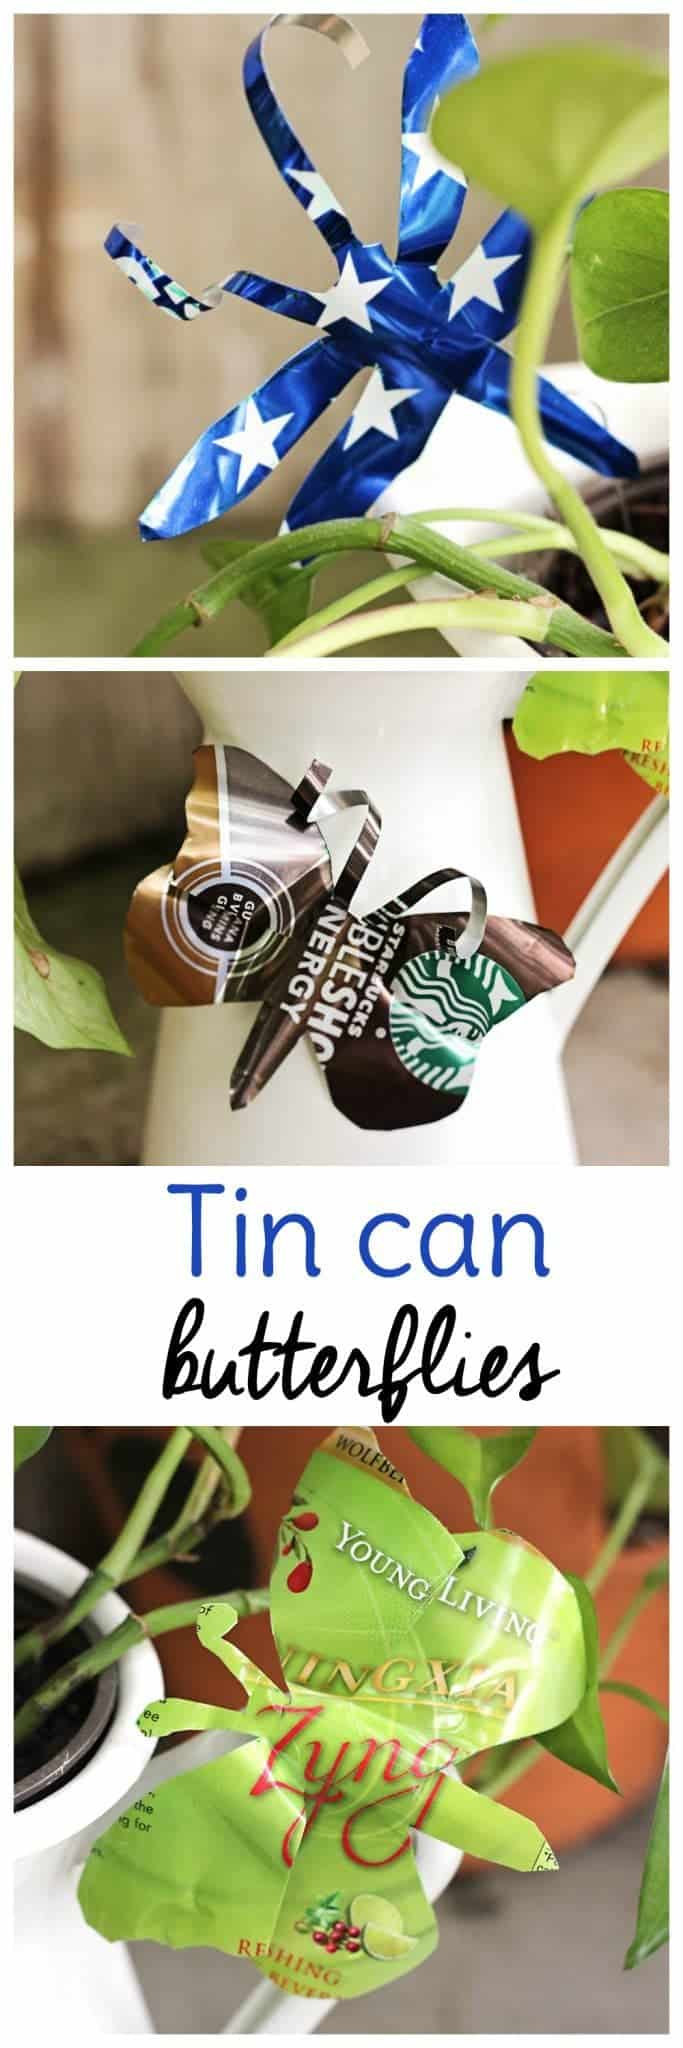 Upcycle aluminum cans into butterflies and dragonflies for your garden or potted plants with these easy soda can crafts.